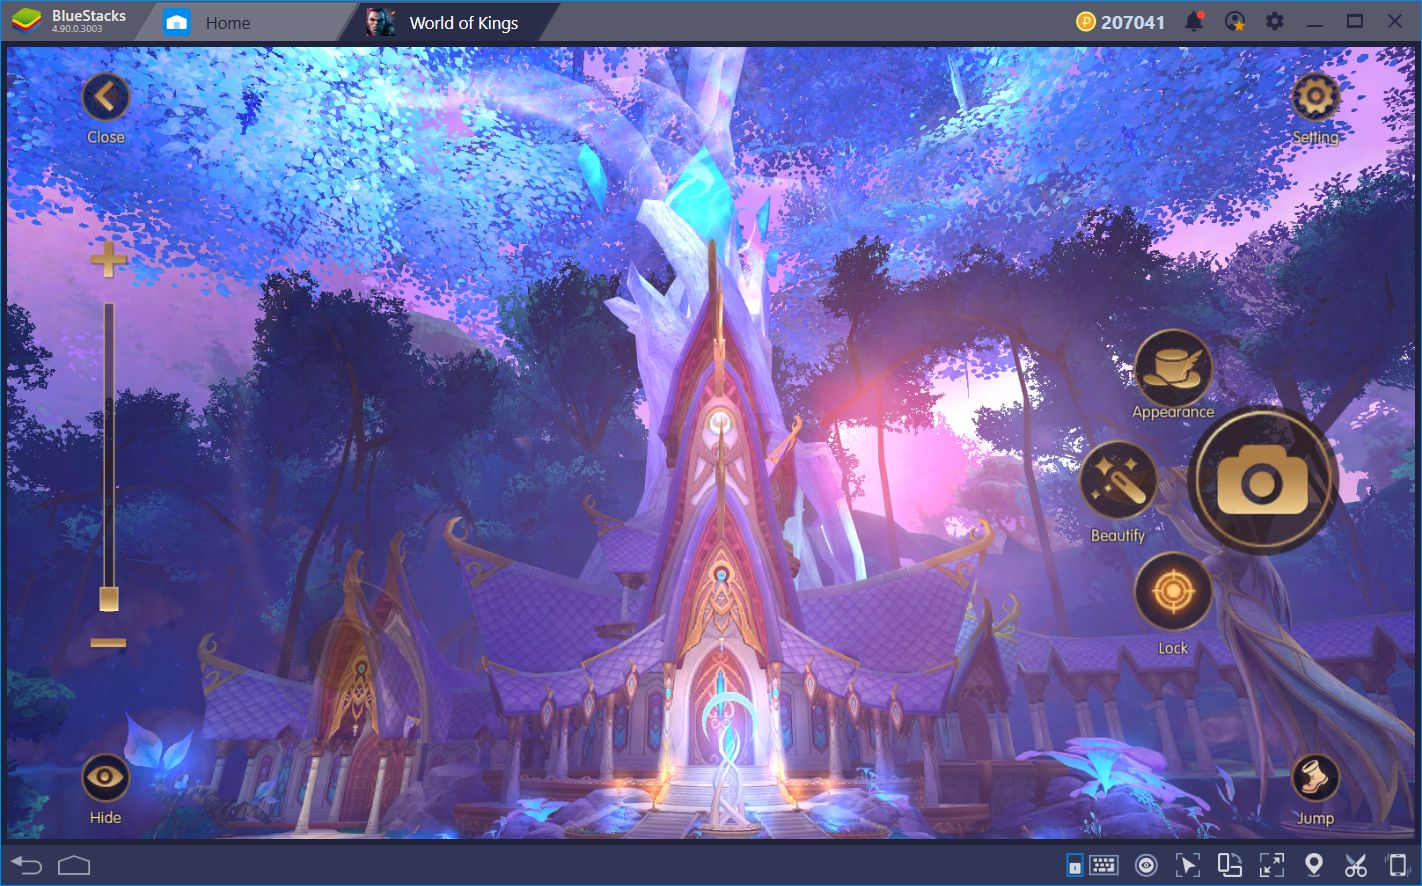 World of Kings on BlueStacks: Stunning UHD Graphics and